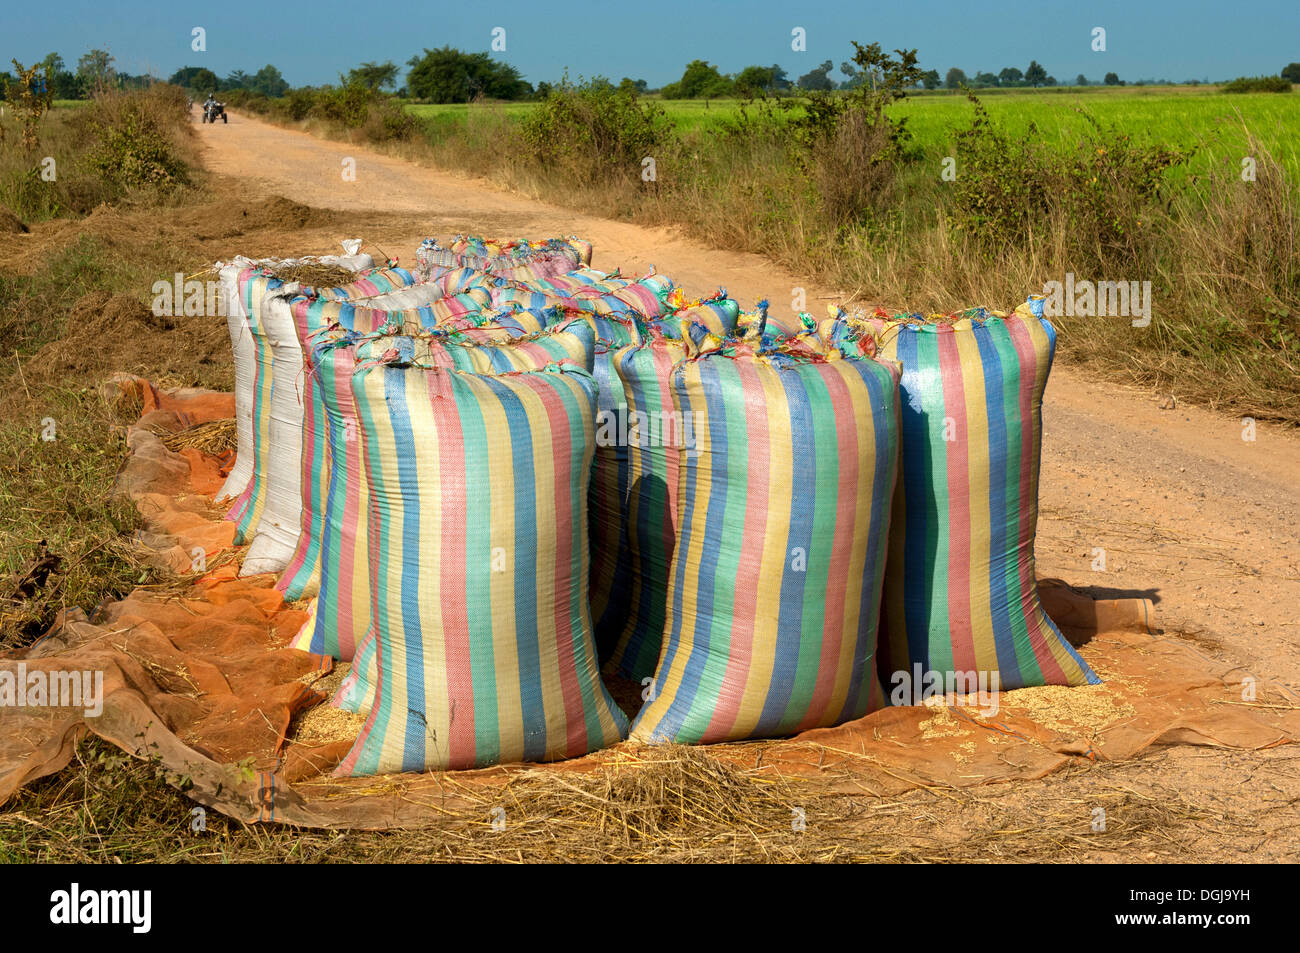 Bulging sacks of rice ready for collection on a dirt road, Battambang, Cambodia, Southeast Asia, Asia Stock Photo